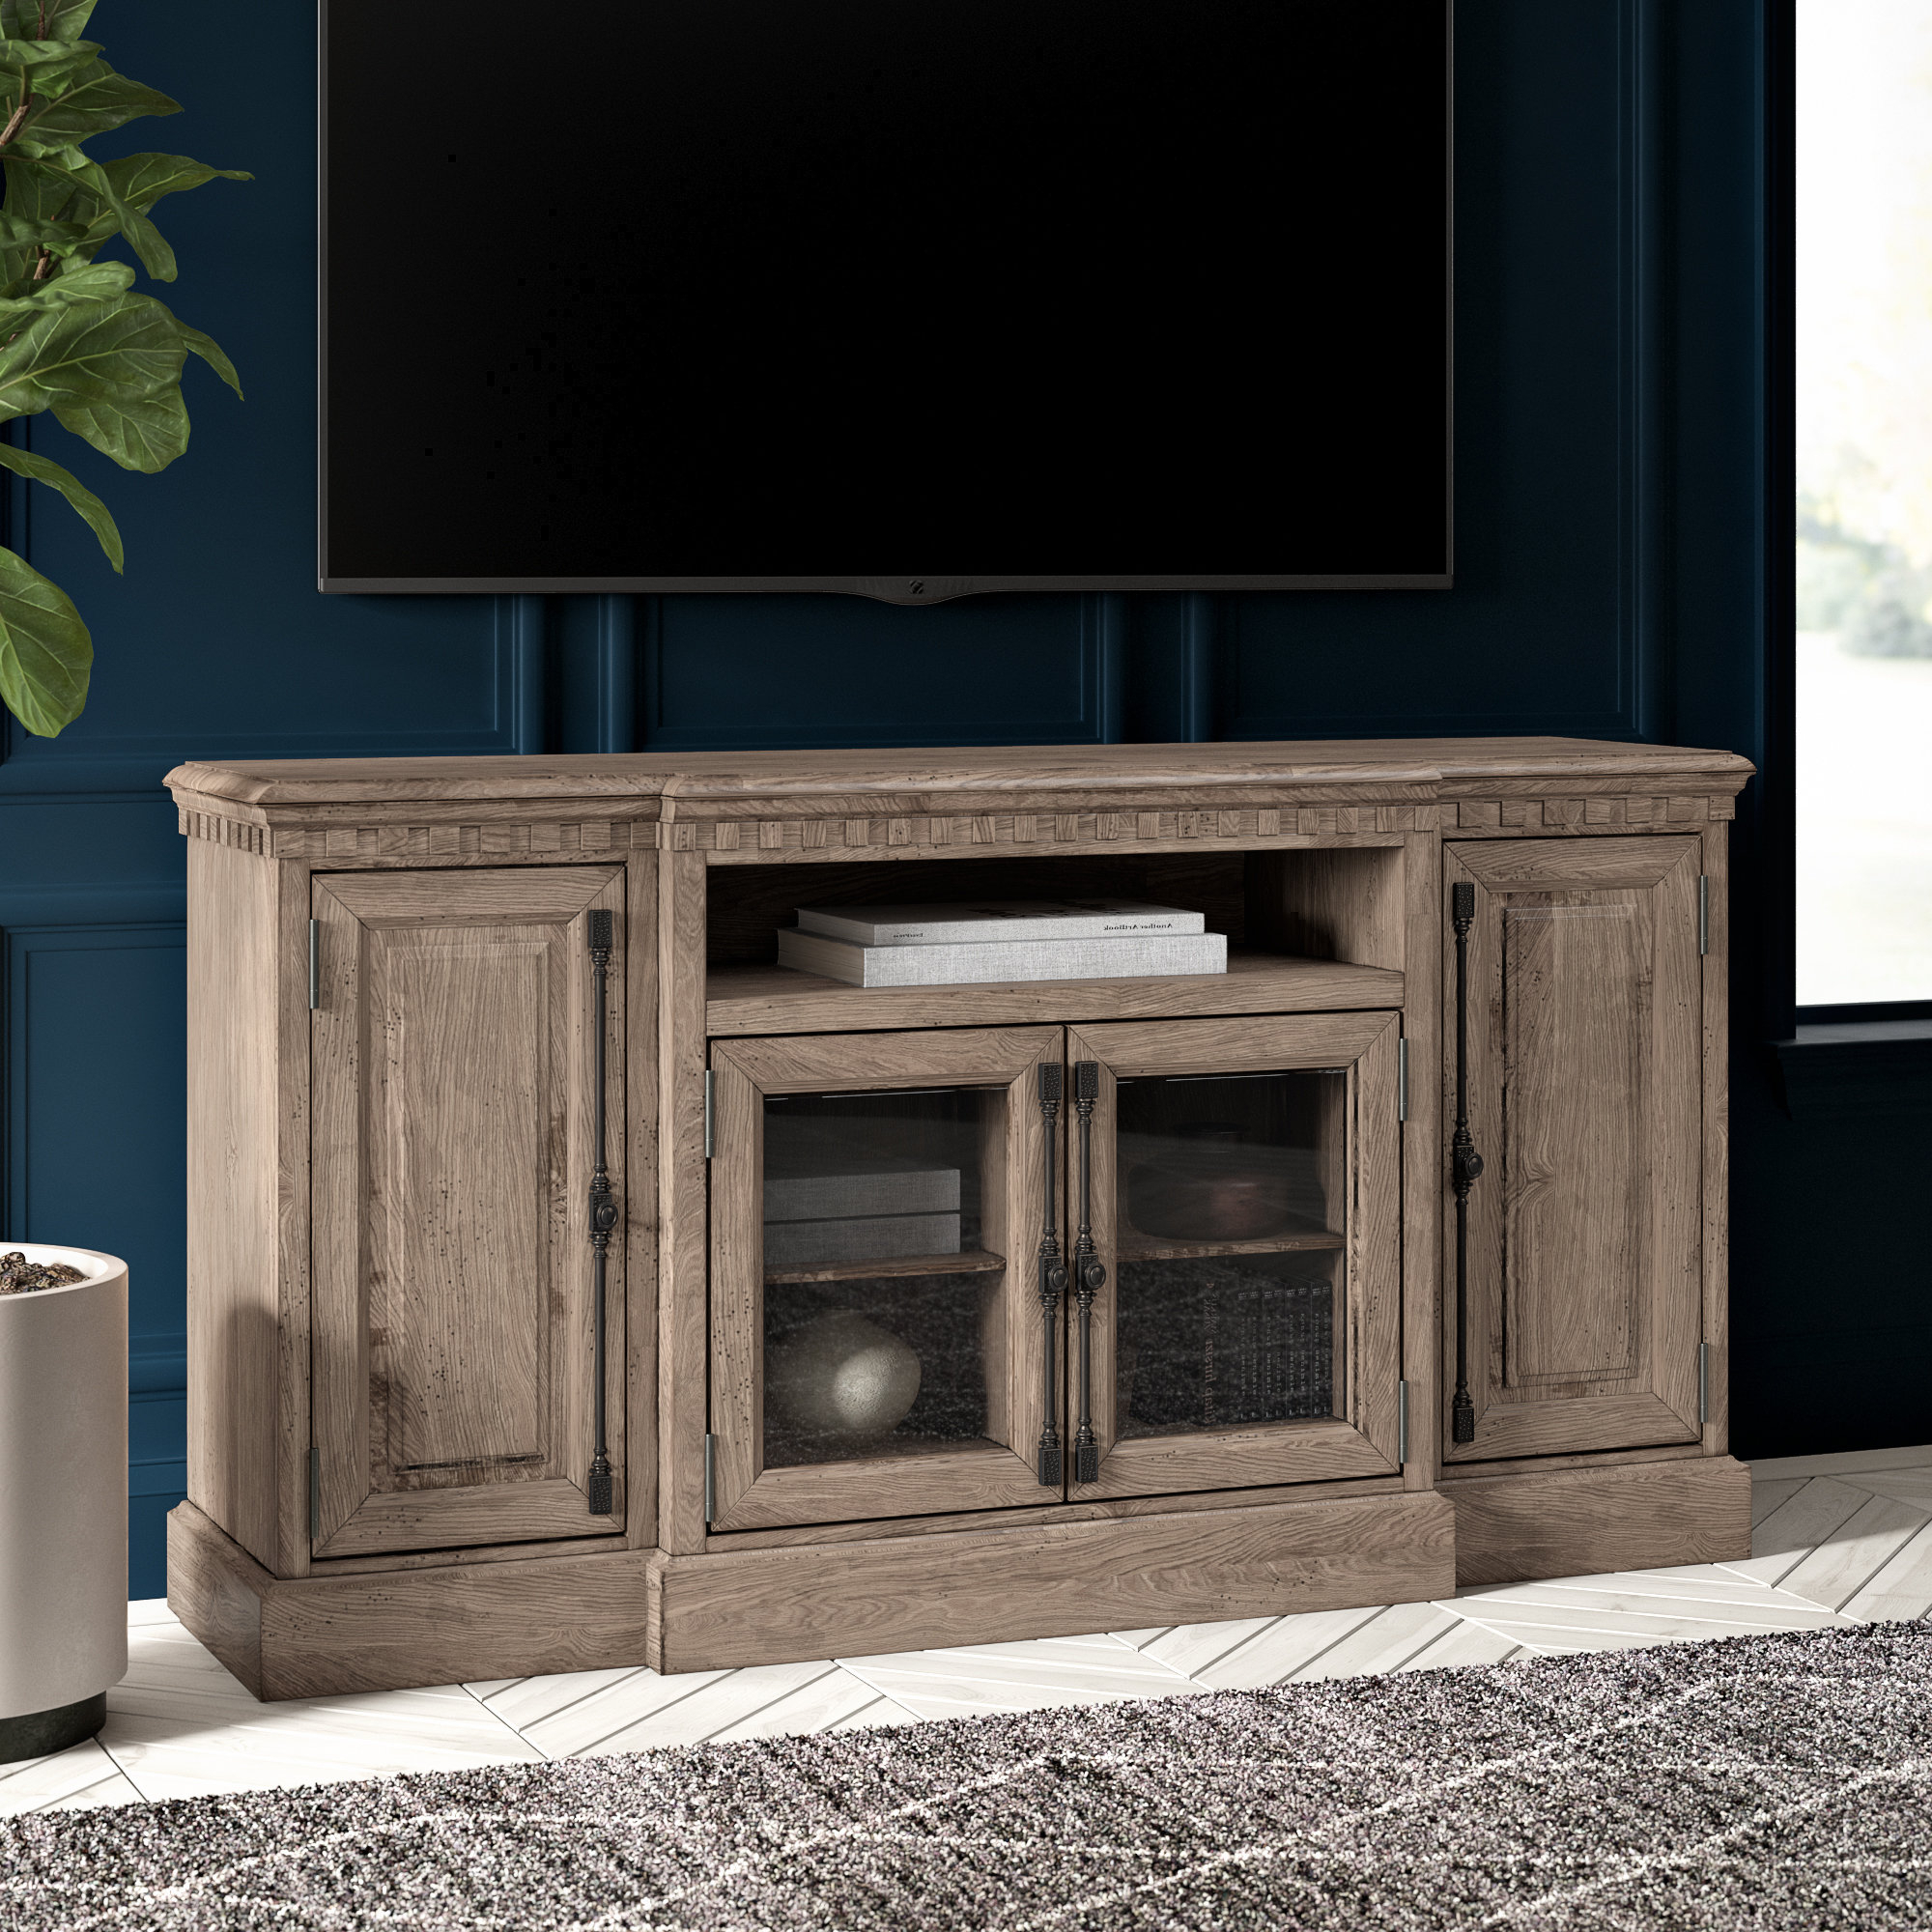 Tall Tv Stands You'll Love | Wayfair With Regard To Edwin Grey 64 Inch Tv Stands (View 18 of 20)